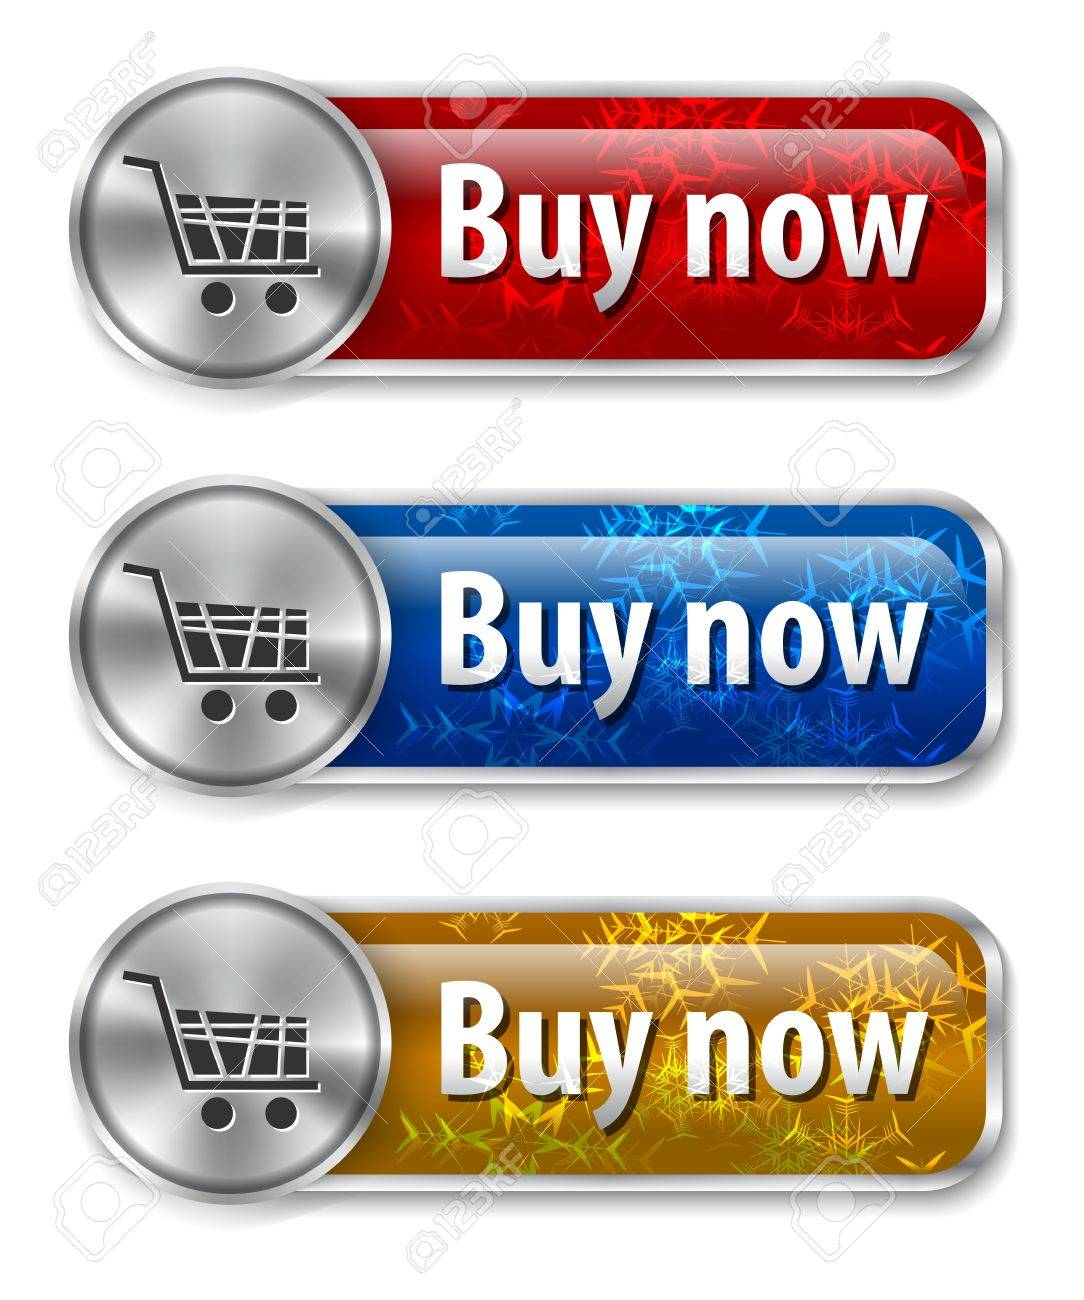 Metallic and glossy web elements/buttons with snowflakes background for online shopping. Stock Vector - 16002670